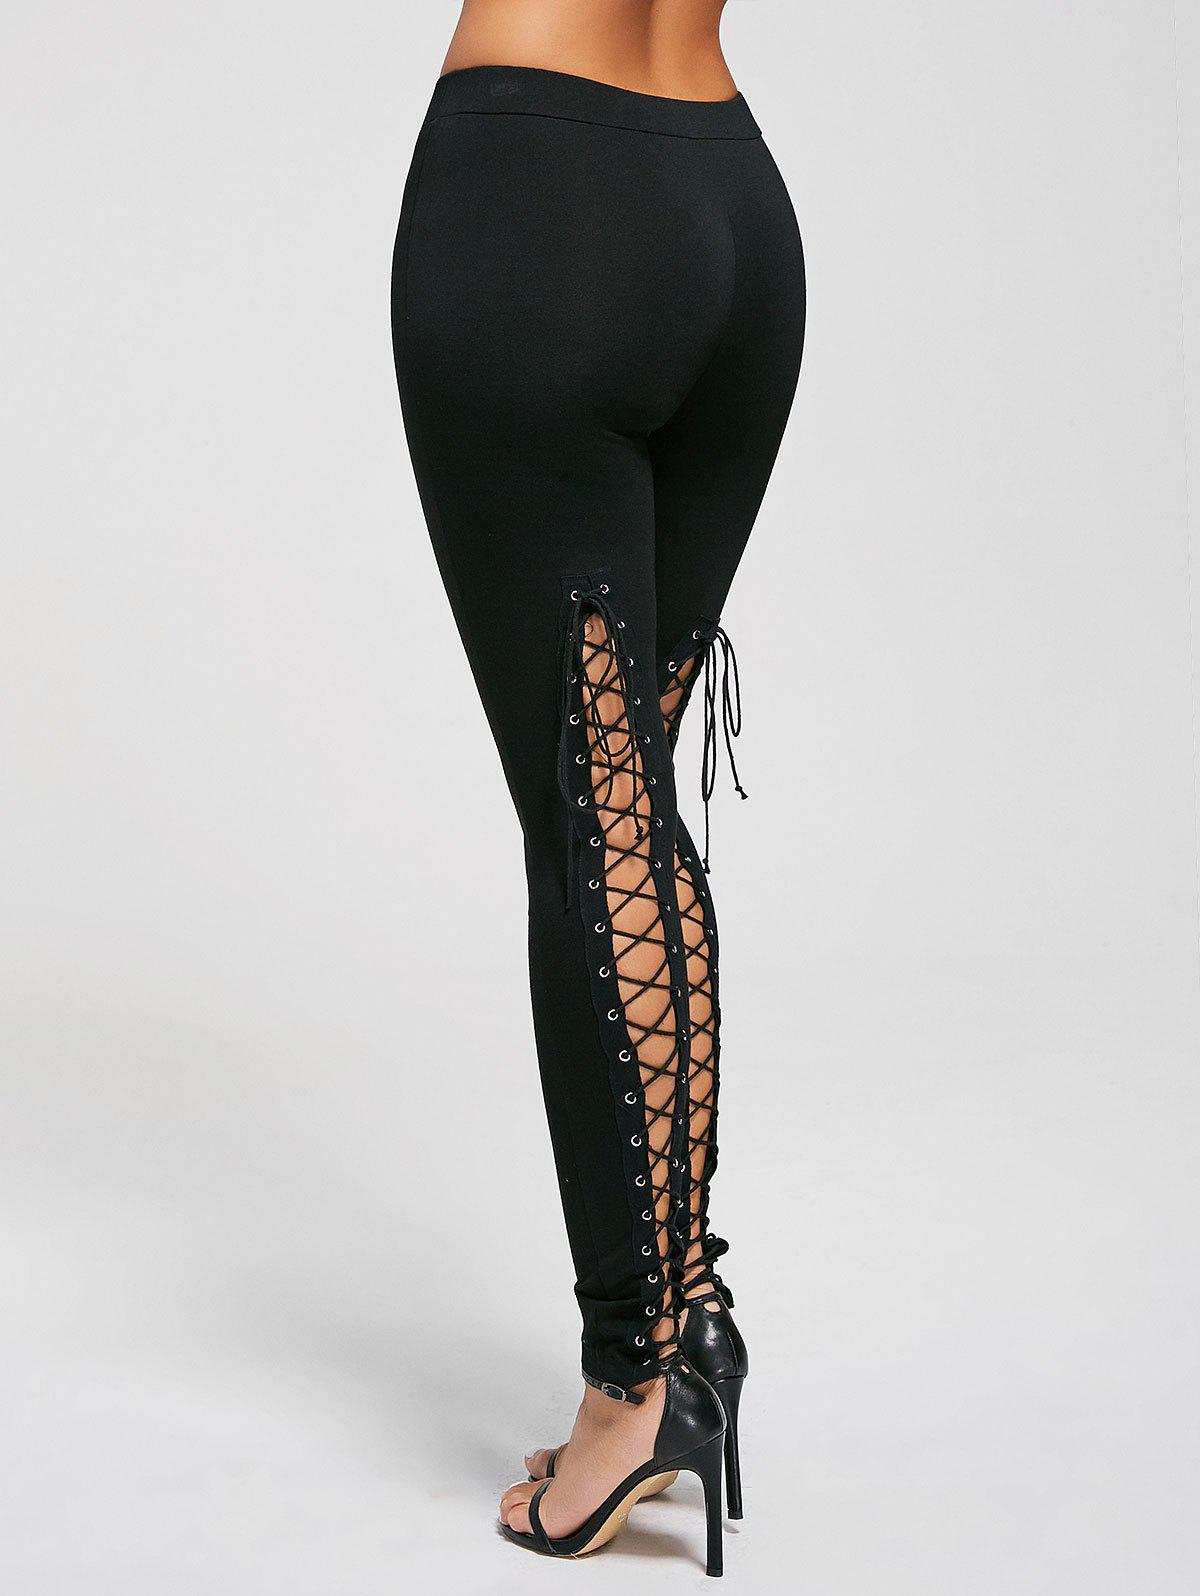 Lace Up Cut Out Leggings - BLACK 2XL